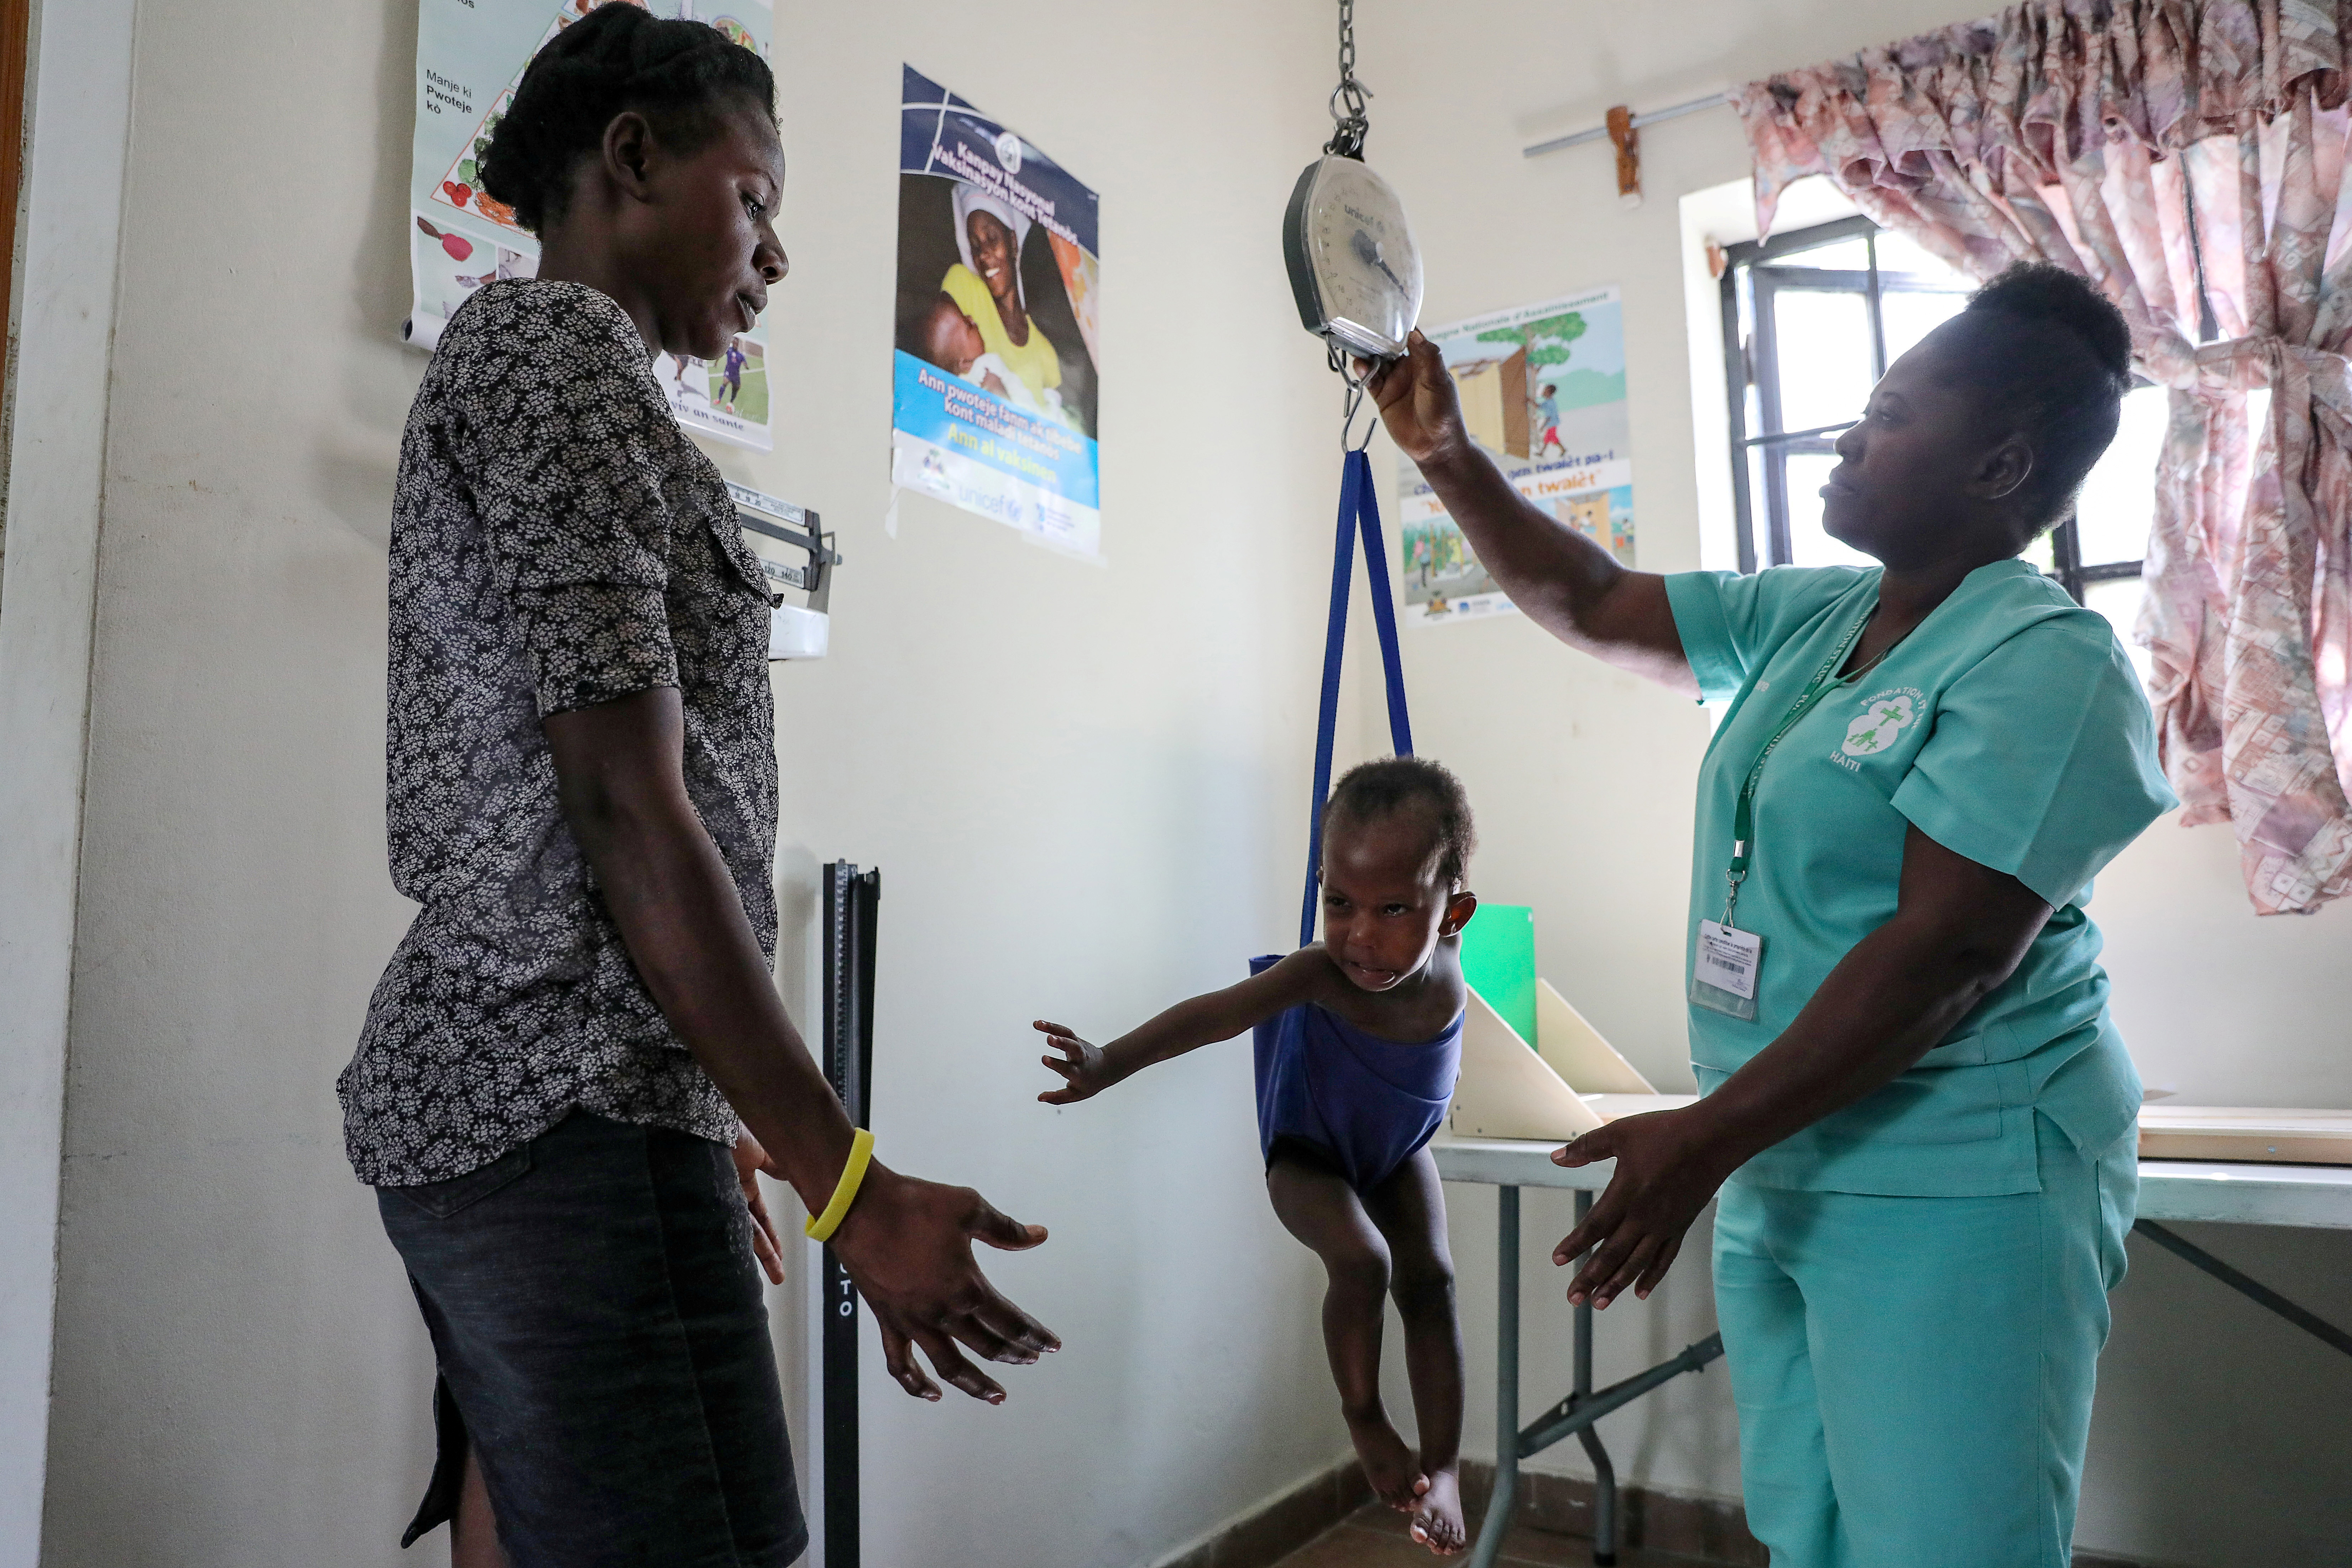 A nurse weighs a child in front of its mother at St. Luke Hospital in Port-au-Prince, Haiti January 29, 2020. Picture taken January 29, 2020. REUTERS/Valerie Baeriswyl/File Photo